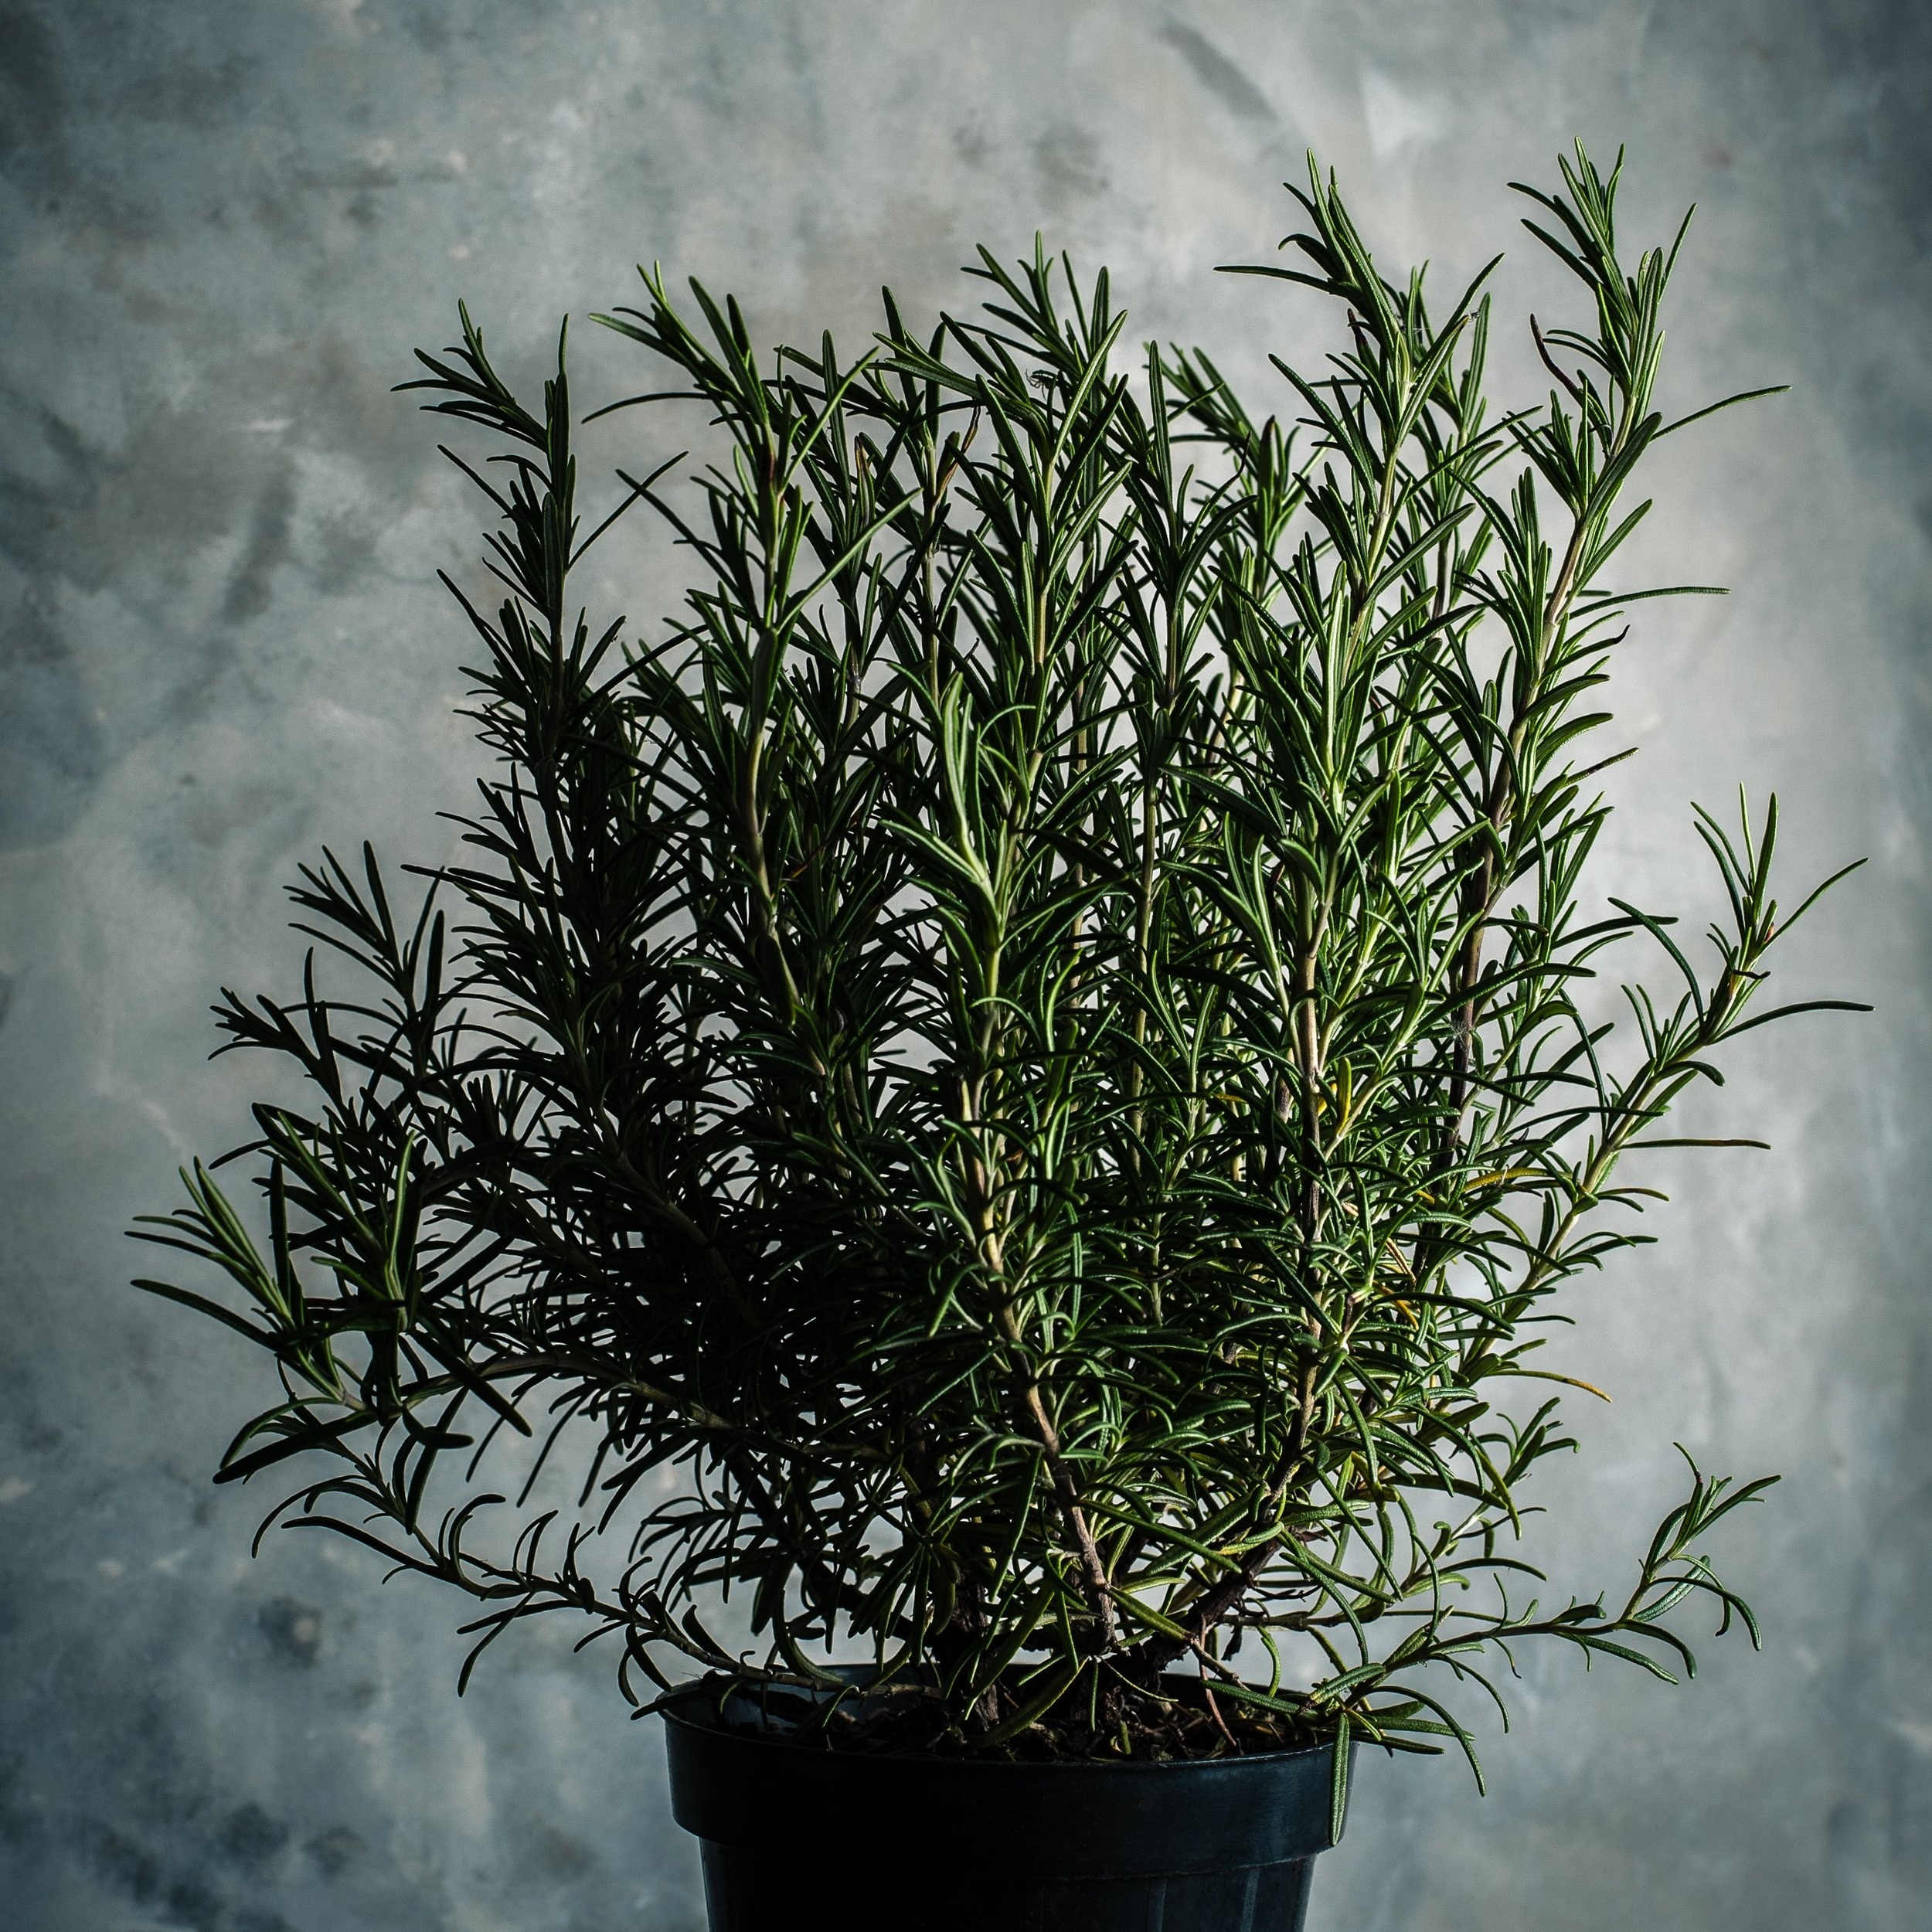 Plants for sale - We have a selection of plants and trees for sale from Tass 1 Trees